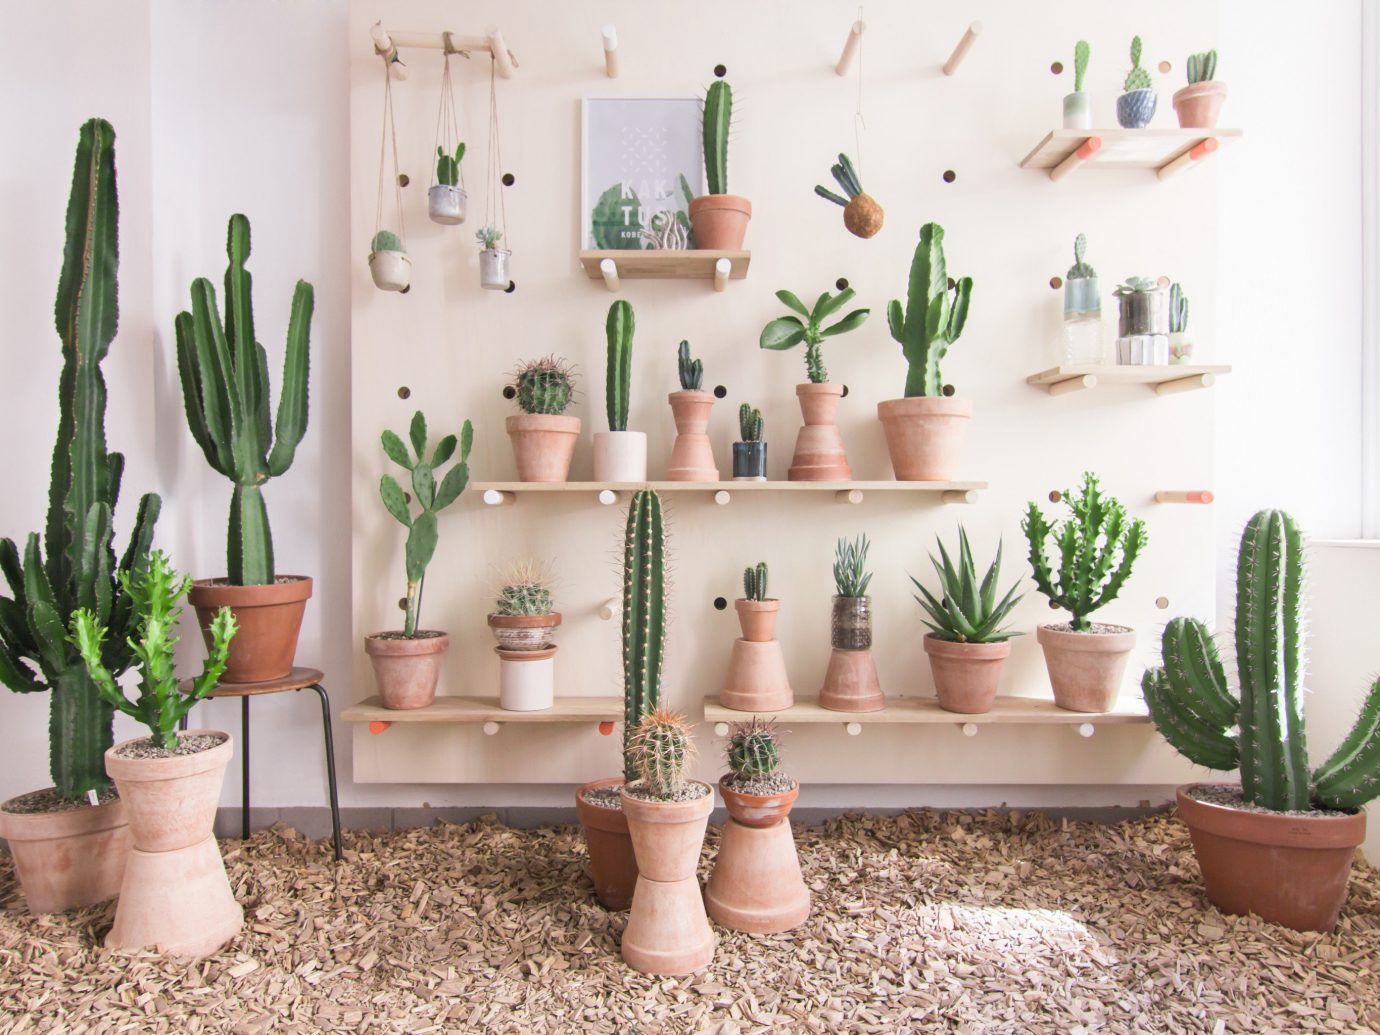 Offbeat Style + Design Travel Trends plant wall cactus flowerpot flowering plant flower furniture product design caryophyllales houseplant